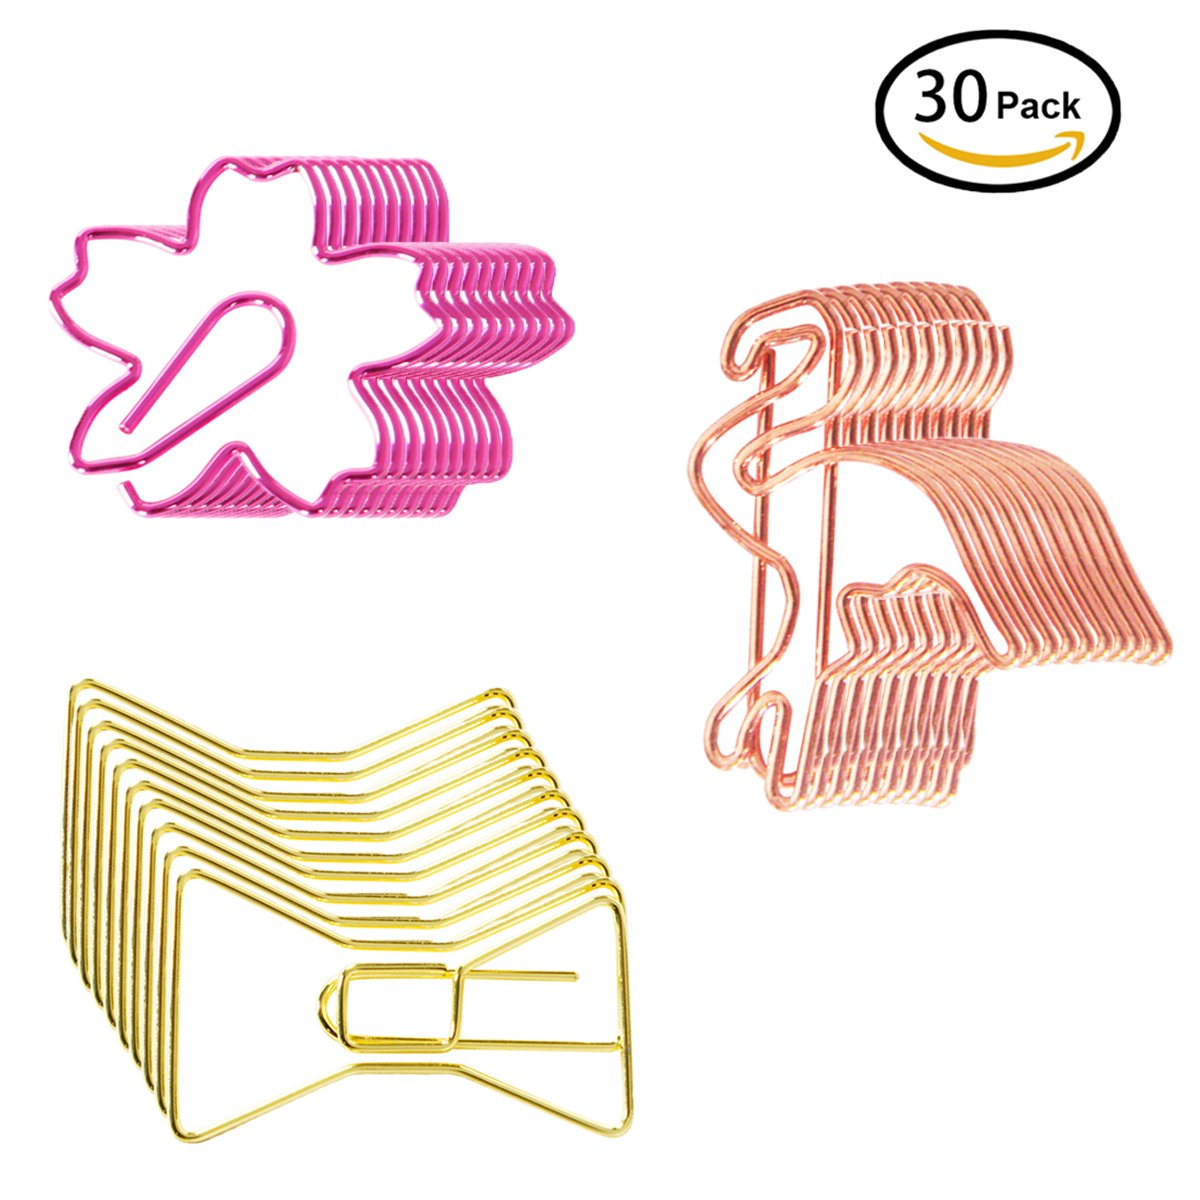 YMhome 30pcs Binder Clips Bookmarks Plated Gold Paperclips Photo File Document Clamps for School Kitchen Home Creative Office Supplies Plating Flamingo & Bow Tie & Cherrybloss